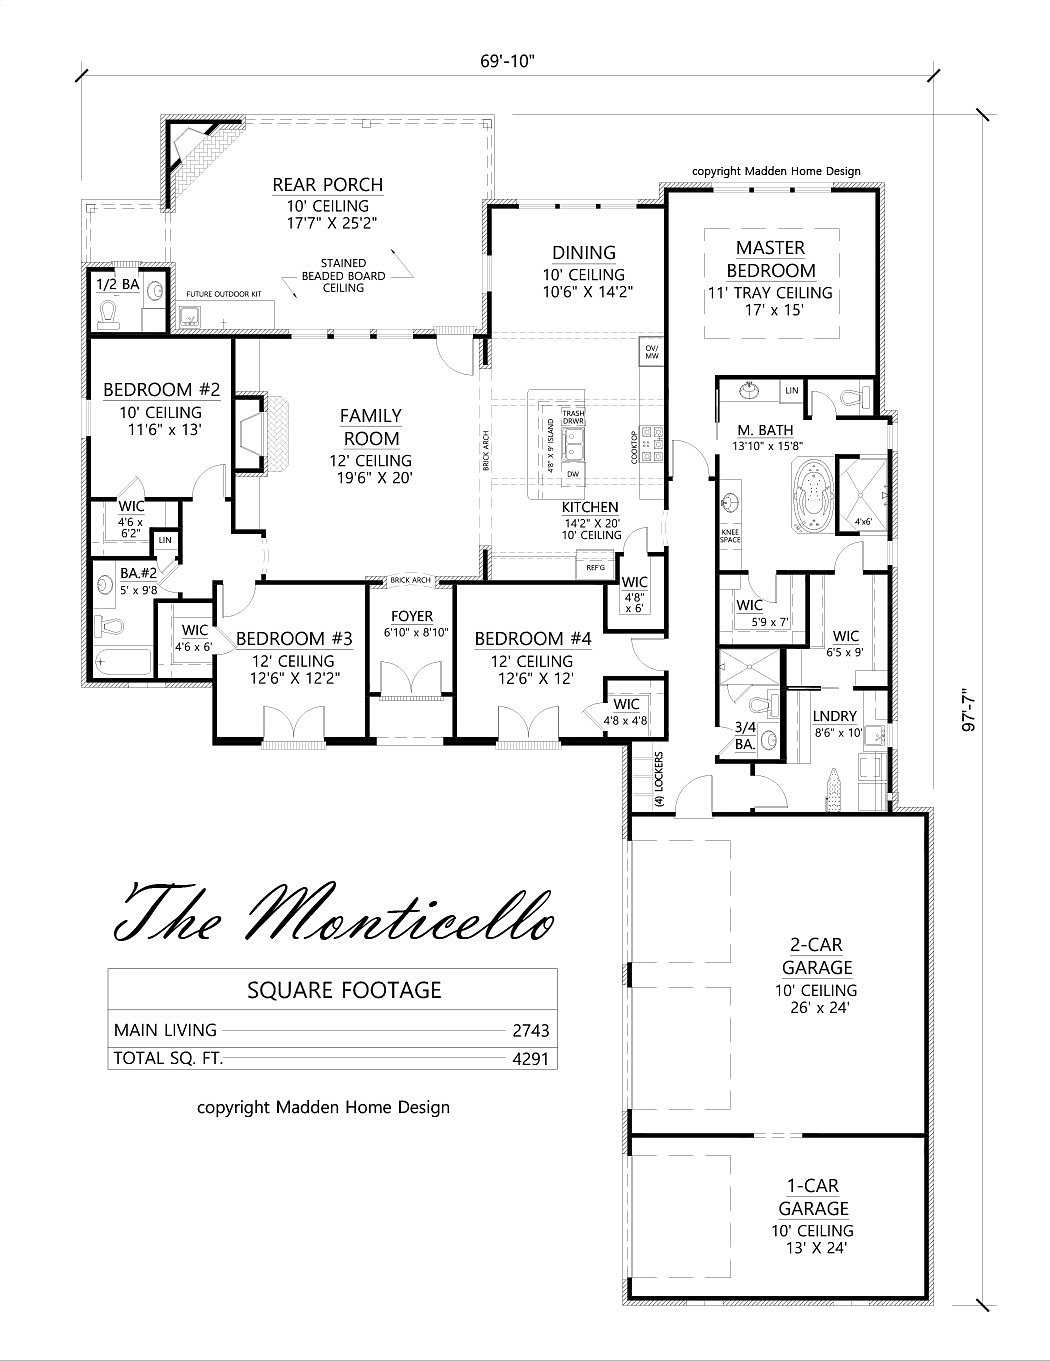 madden home design acadian house plans french country house plans the monticello - Madden Home Designs